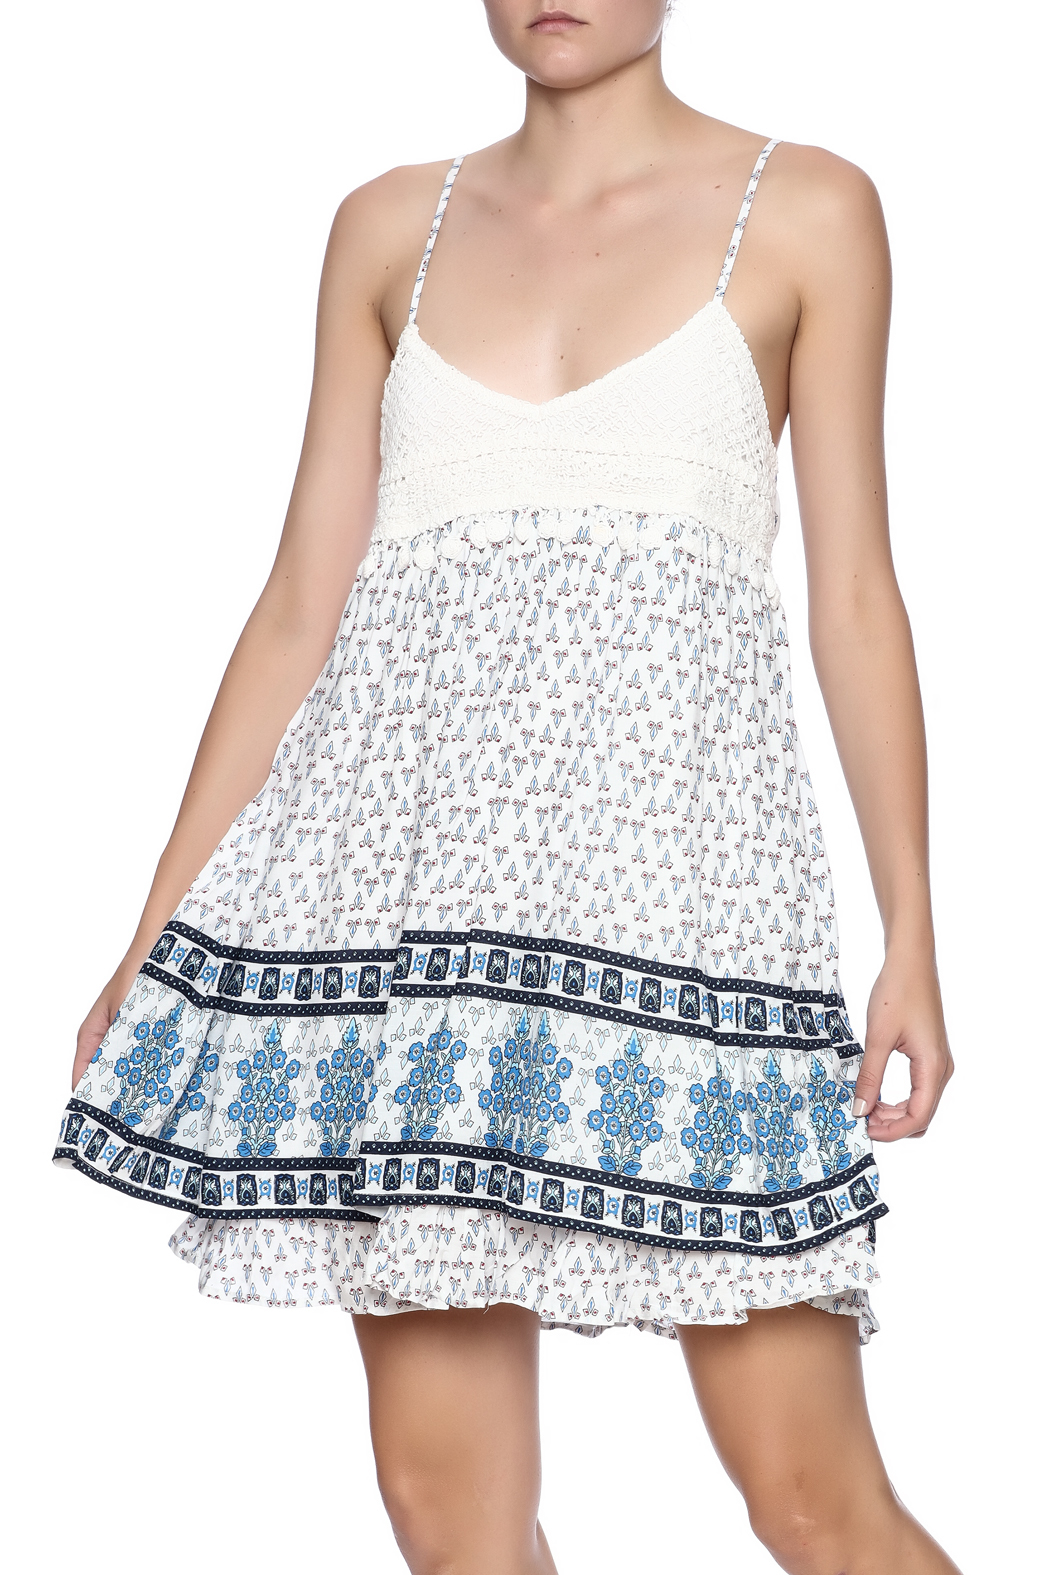 Entro Crochet Babydoll Dress - Main Image